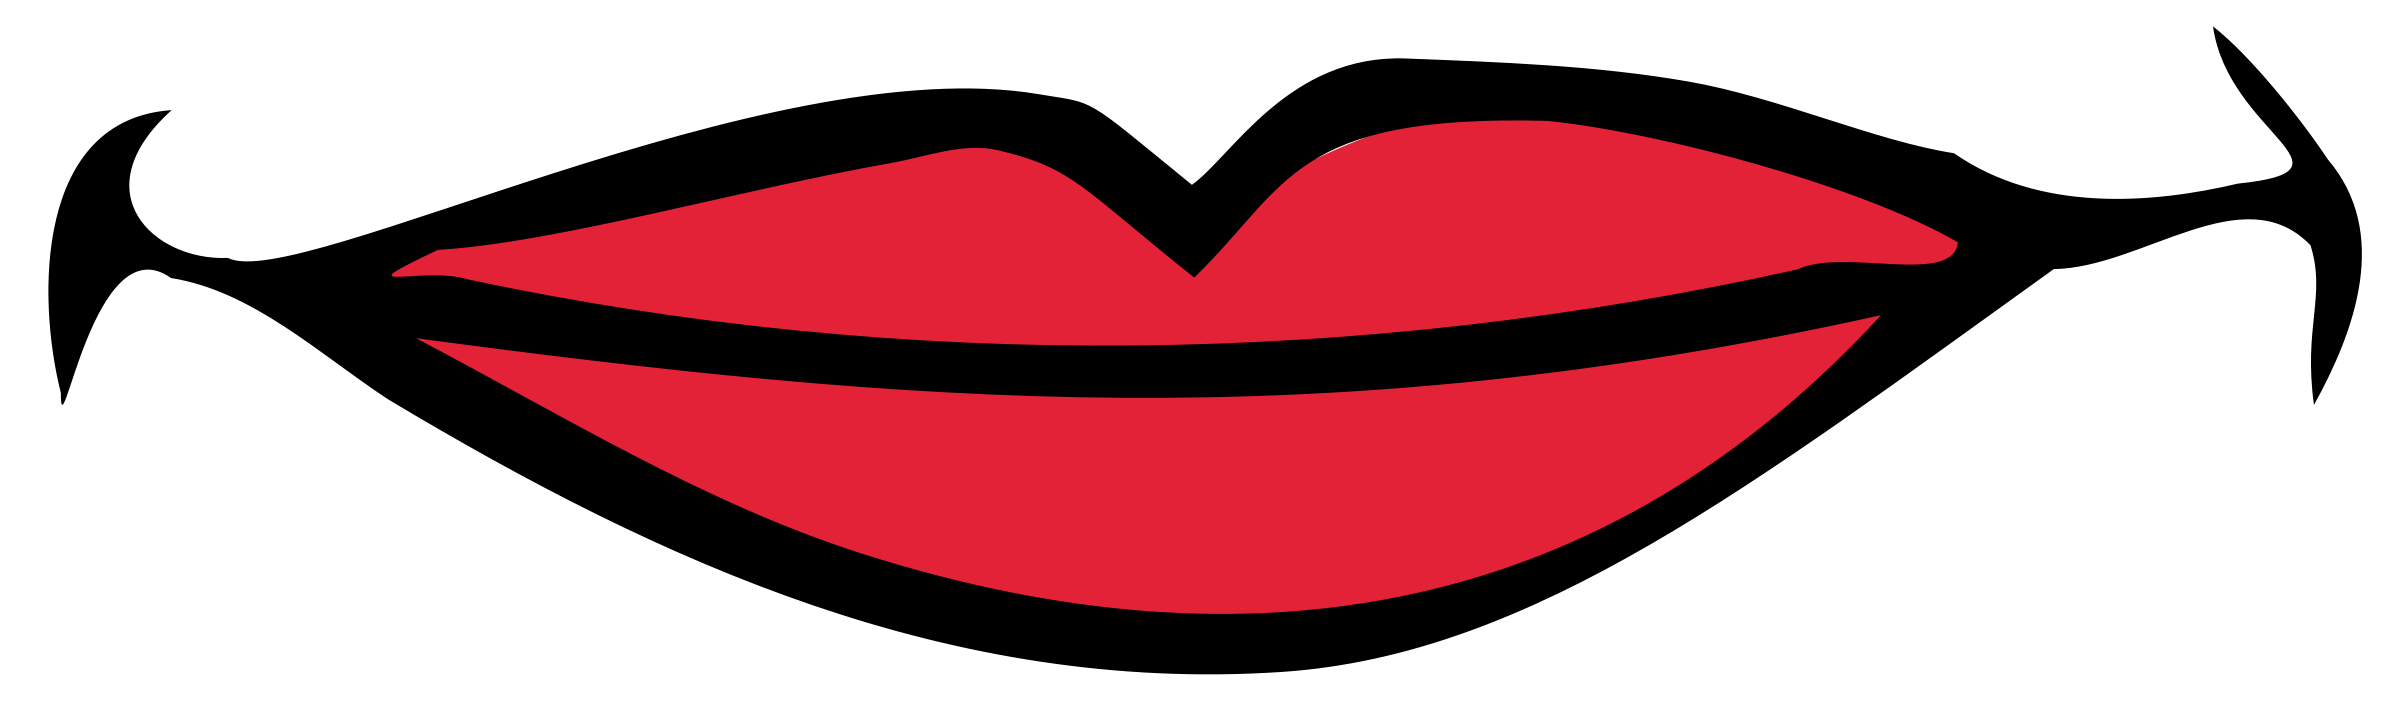 Mouth clipart quiet, Mouth quiet Transparent FREE for.